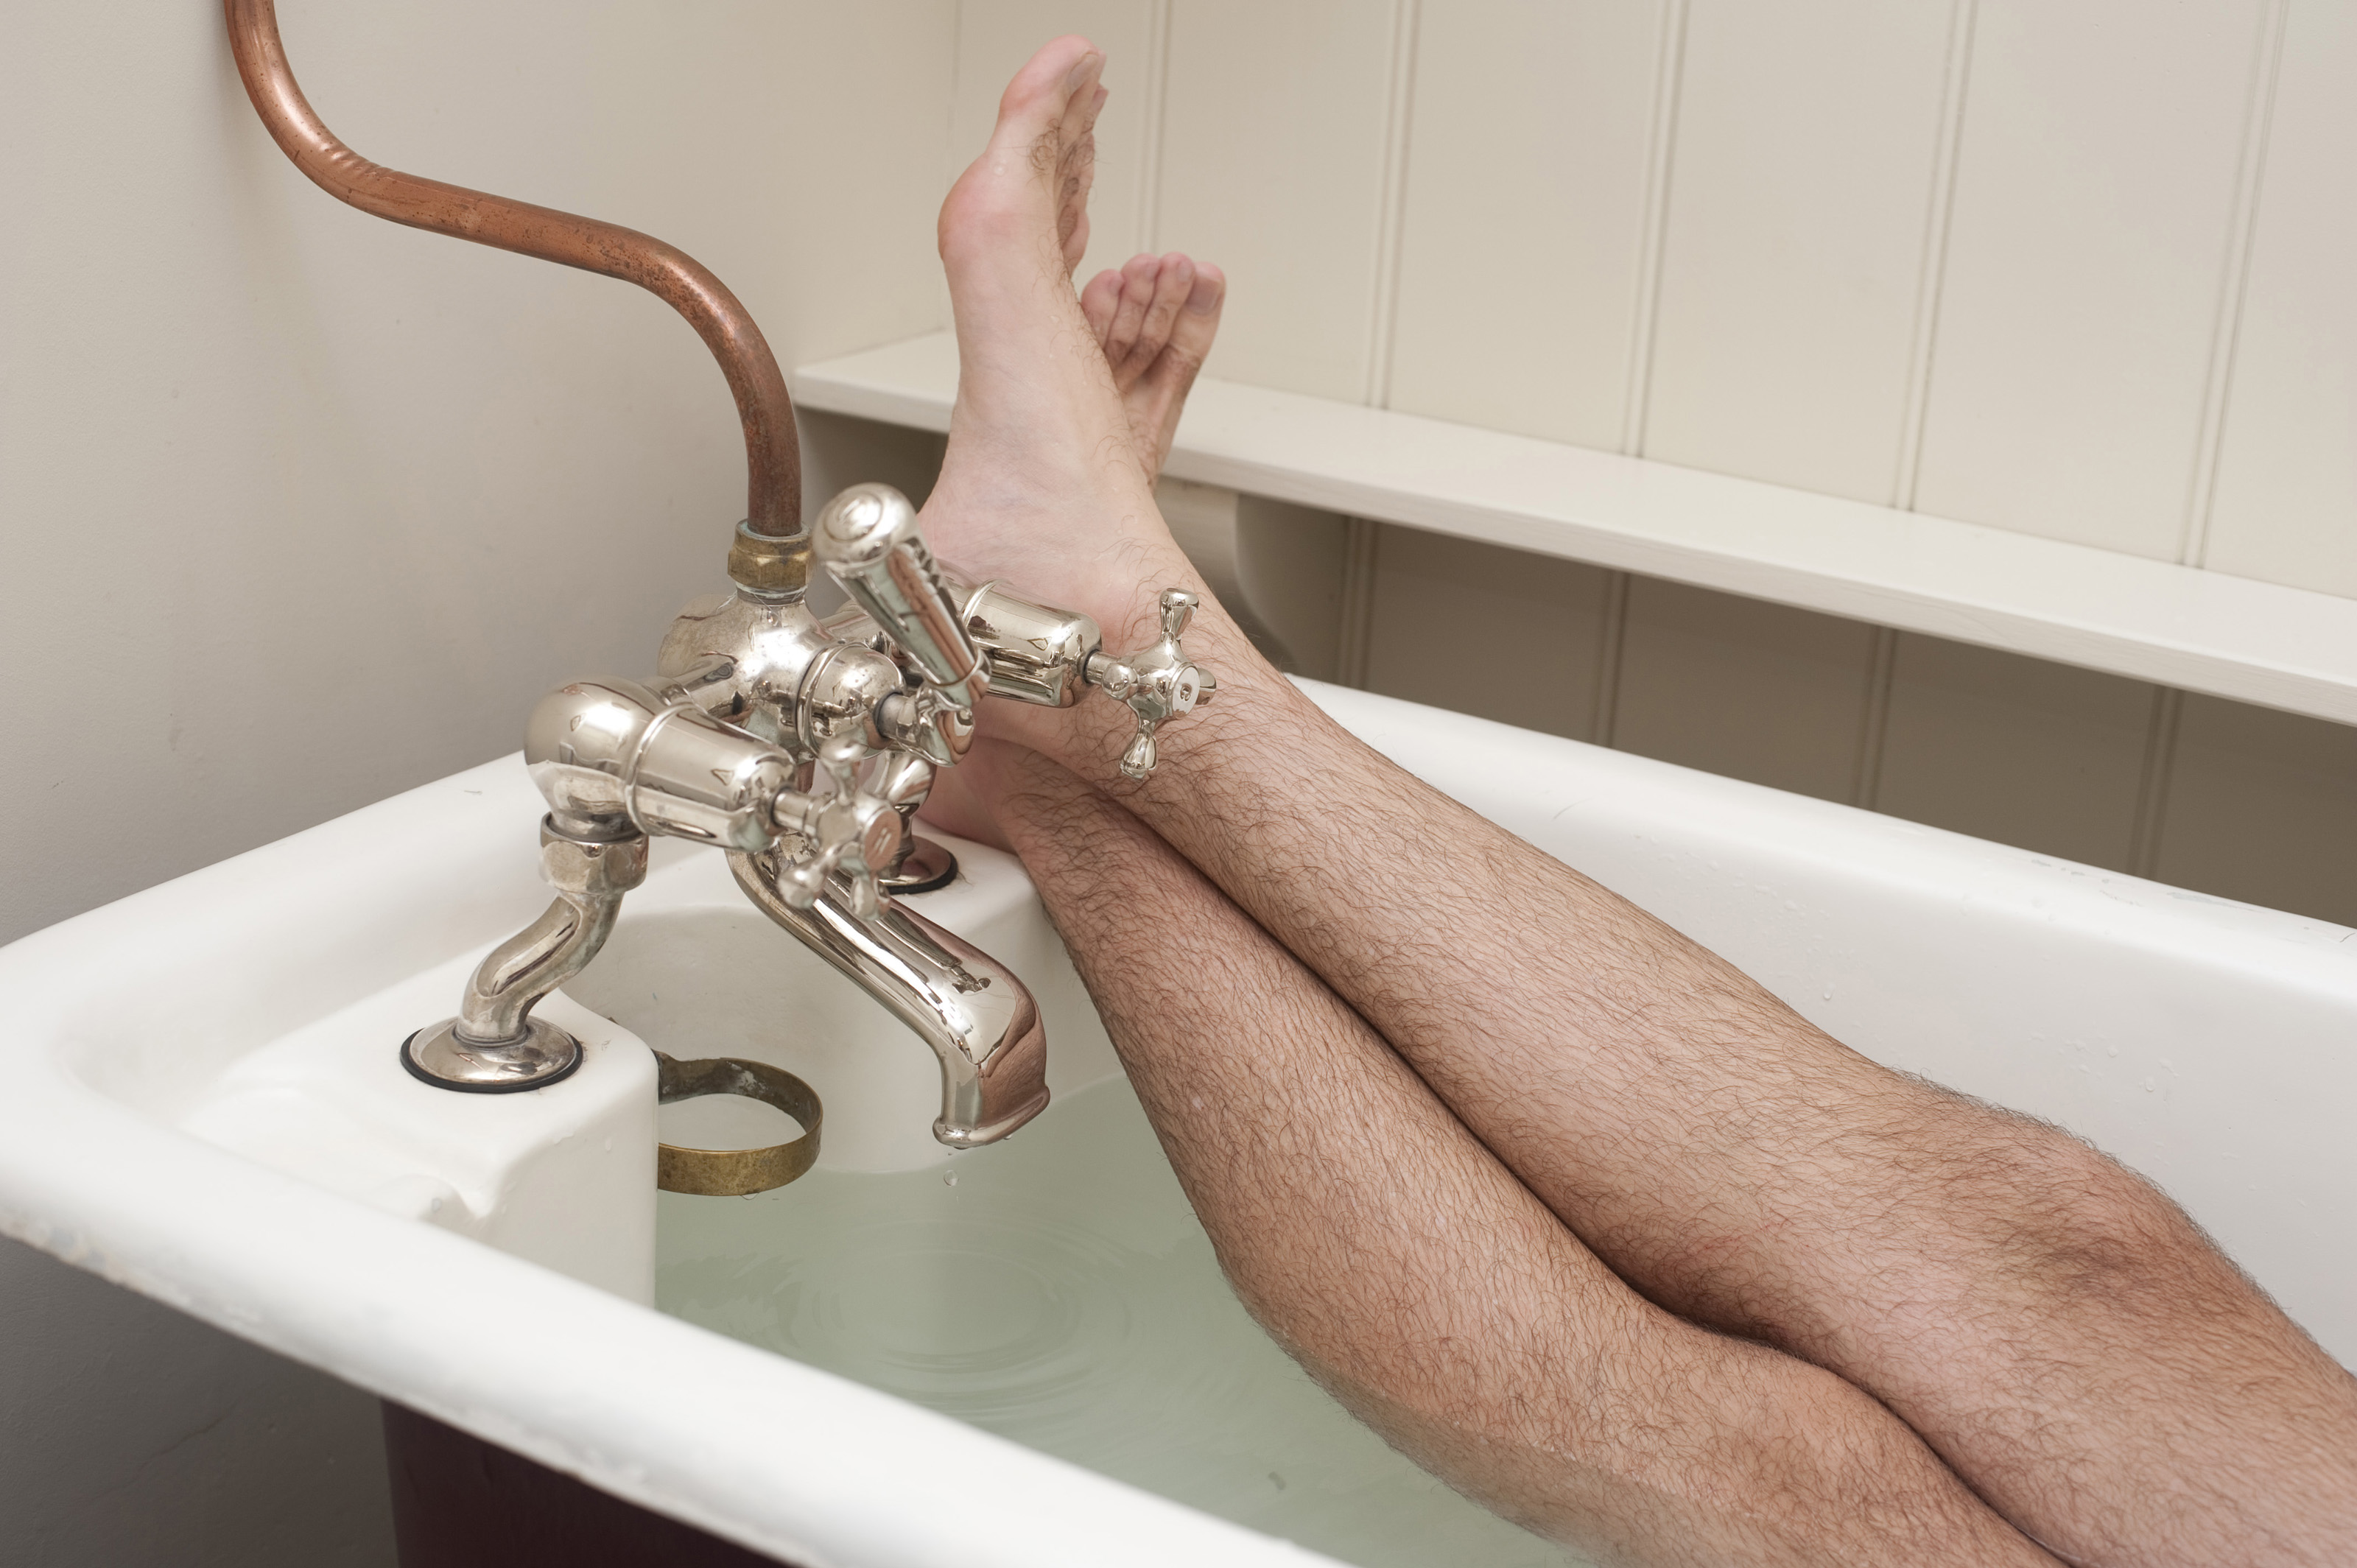 Free Stock Photo 6887 Man enjoying a hot relaxing bath | freeimageslive